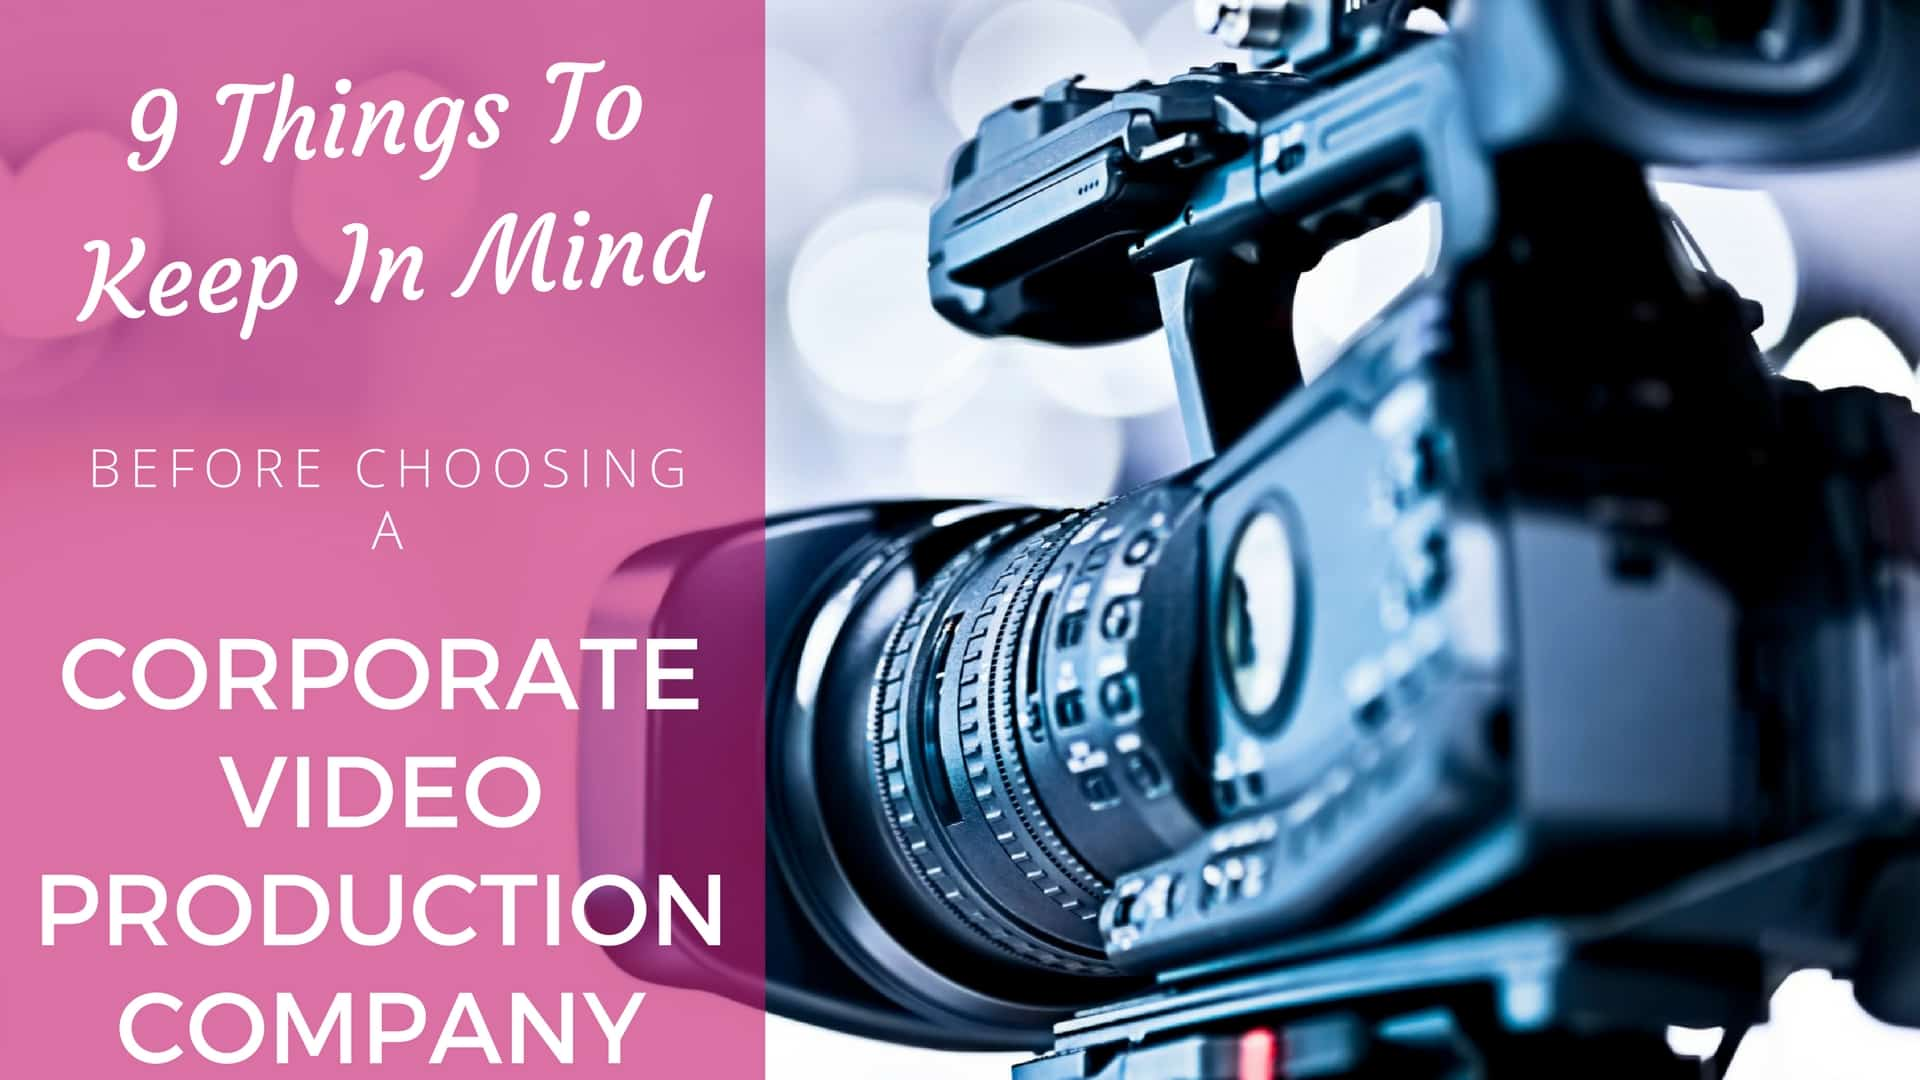 9 Things To Keep In Mind Before Choosing A Corporate Video Production Company.